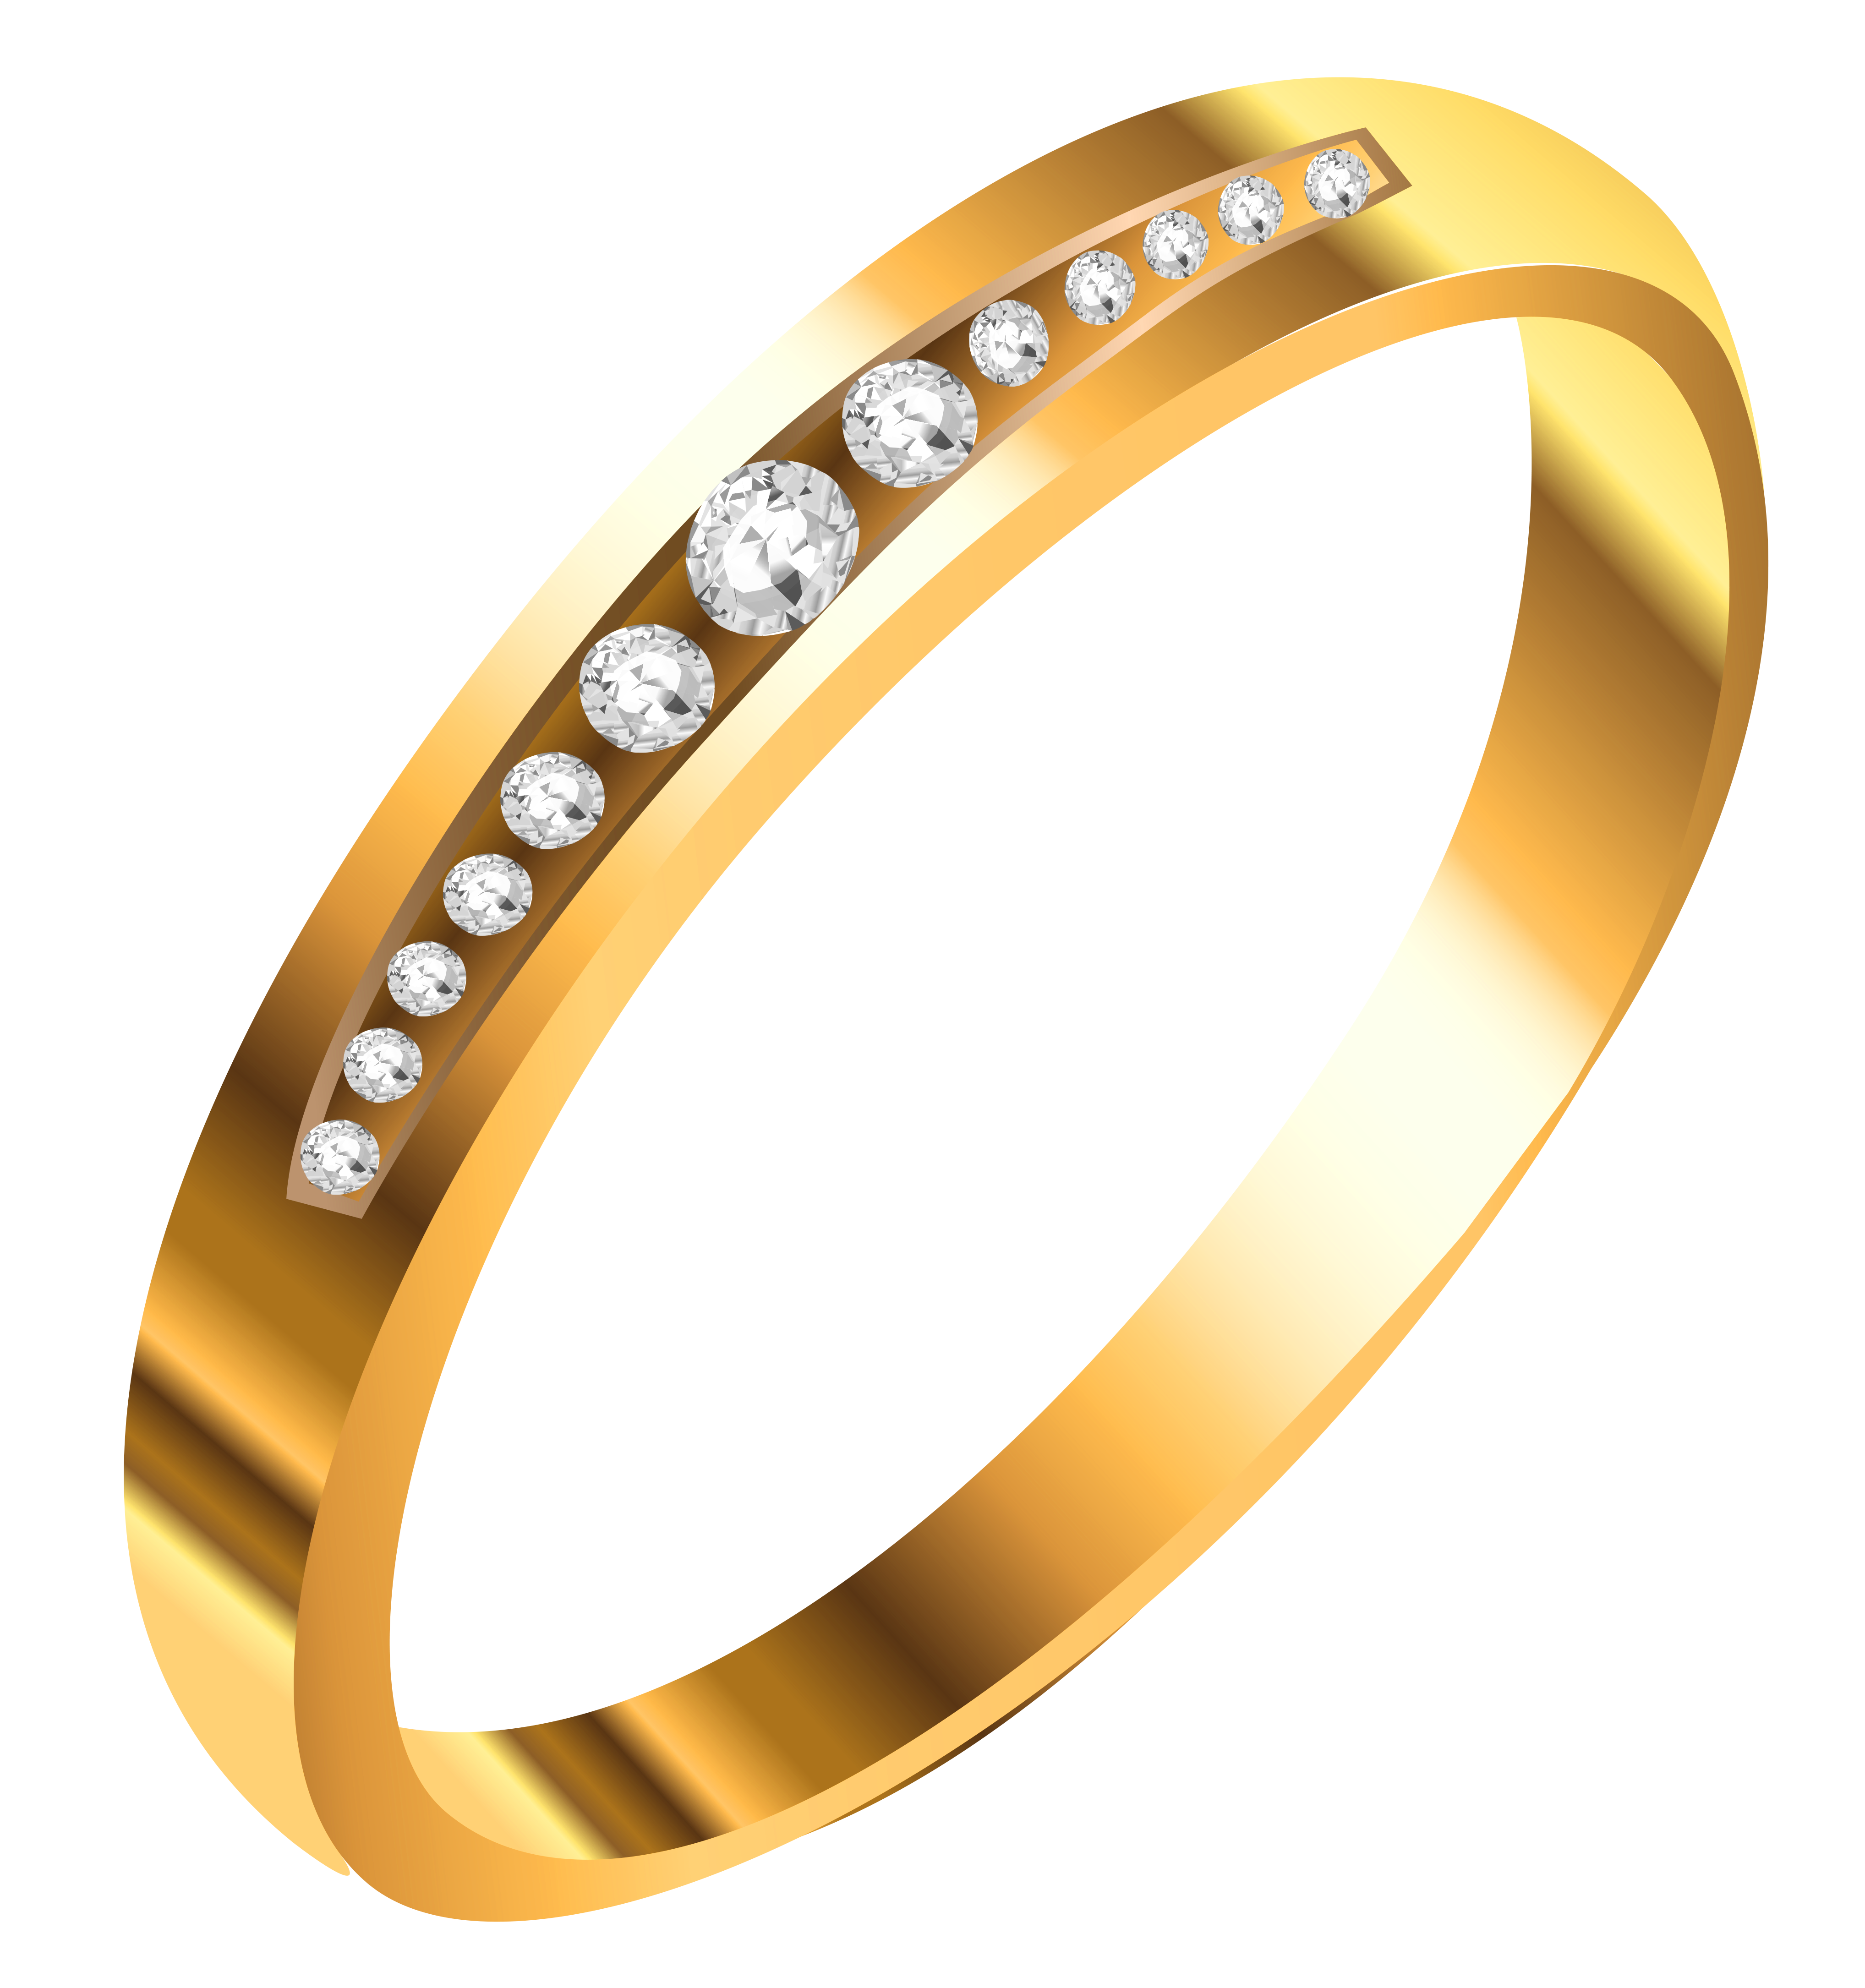 Png gold ring collection. With diamonds clipart gallery